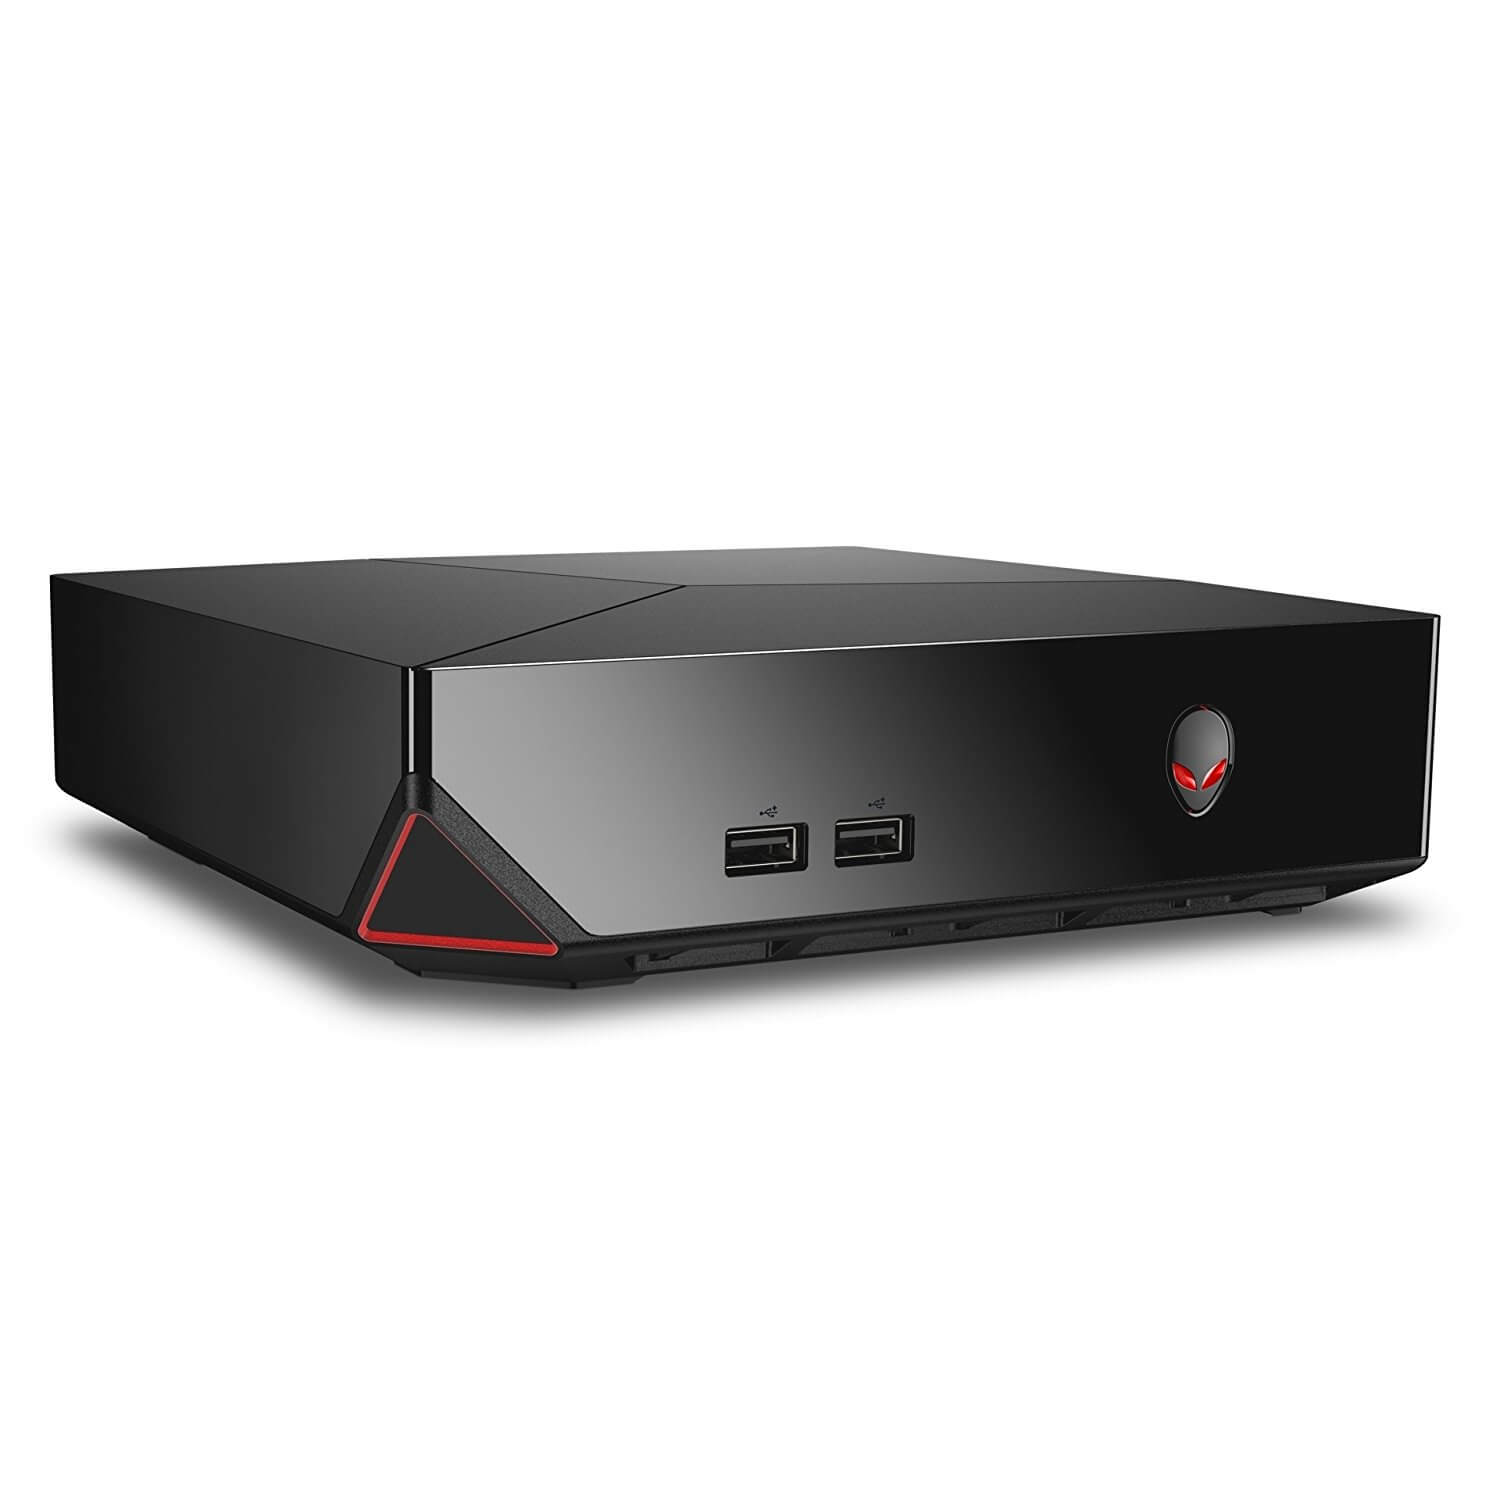 Alienware Alpha R2 mini PC for gaming